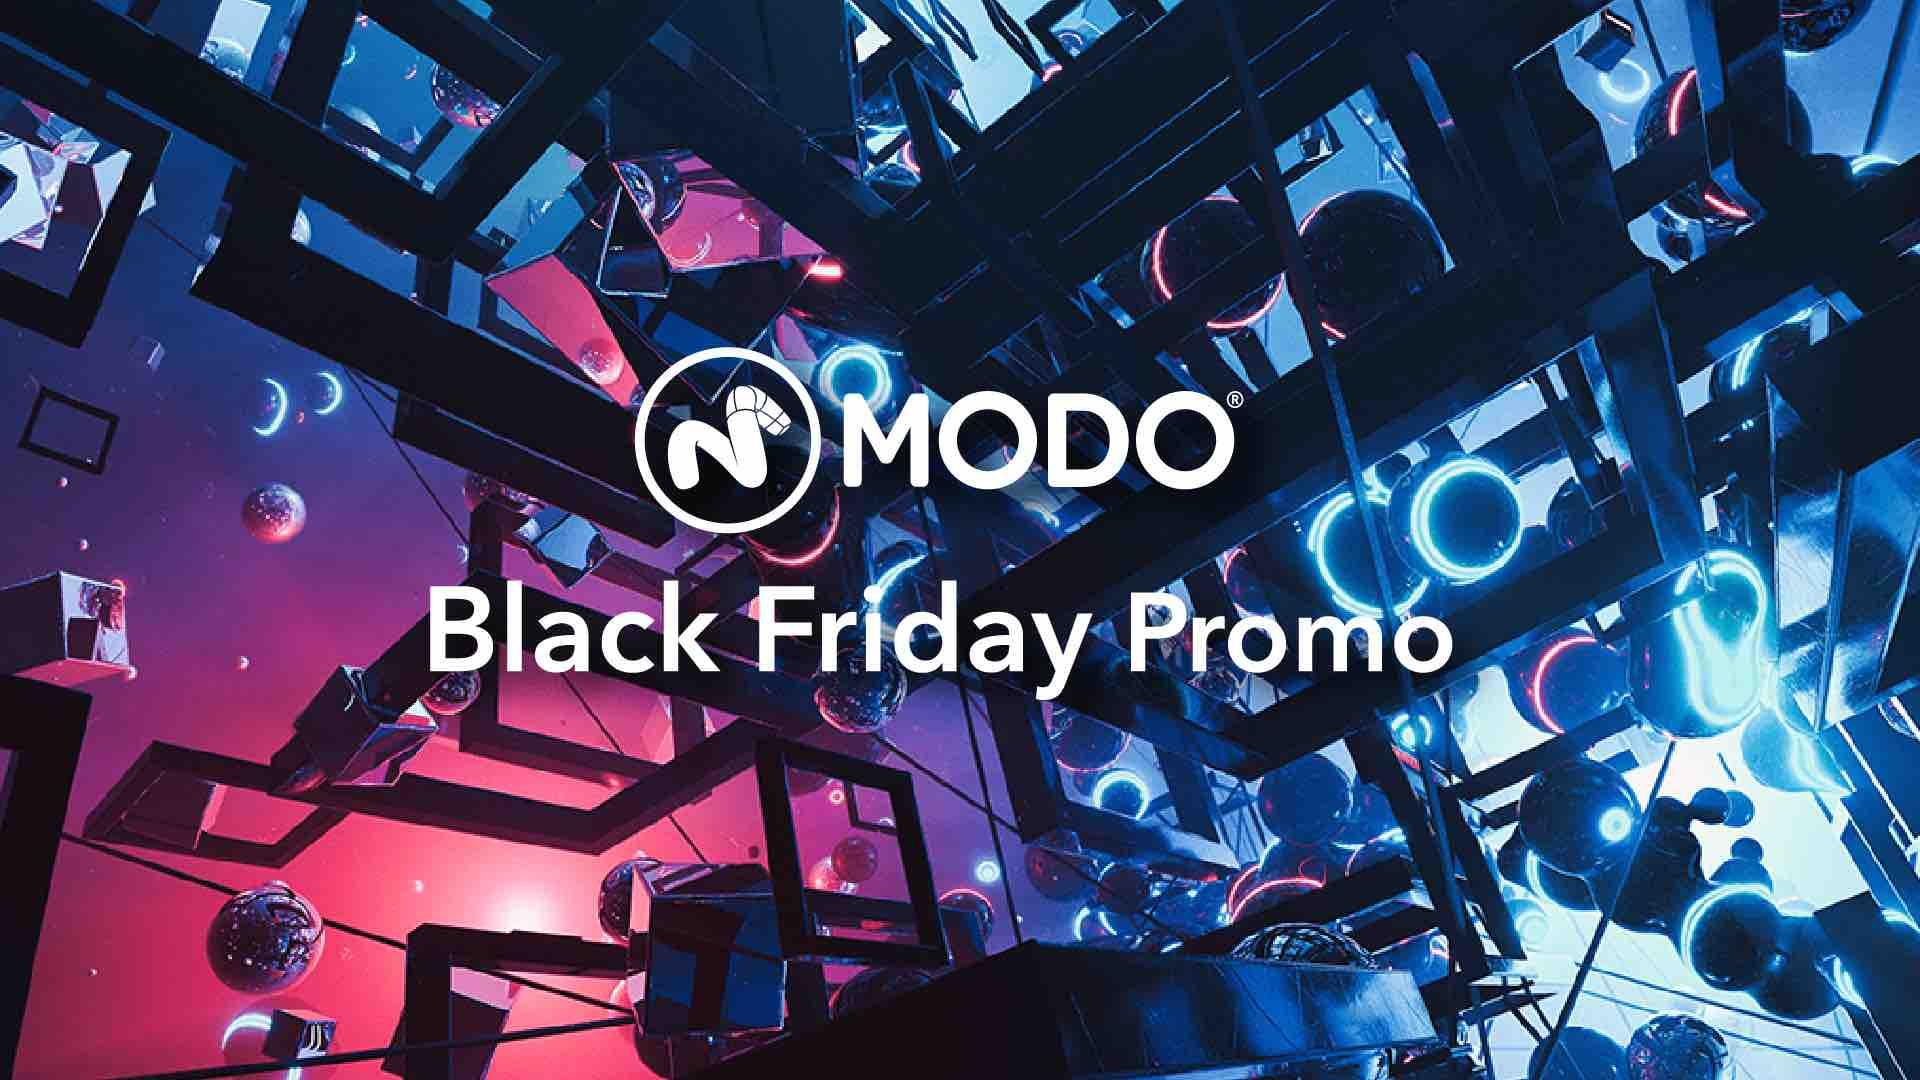 Foundry Black Friday Modo Promo